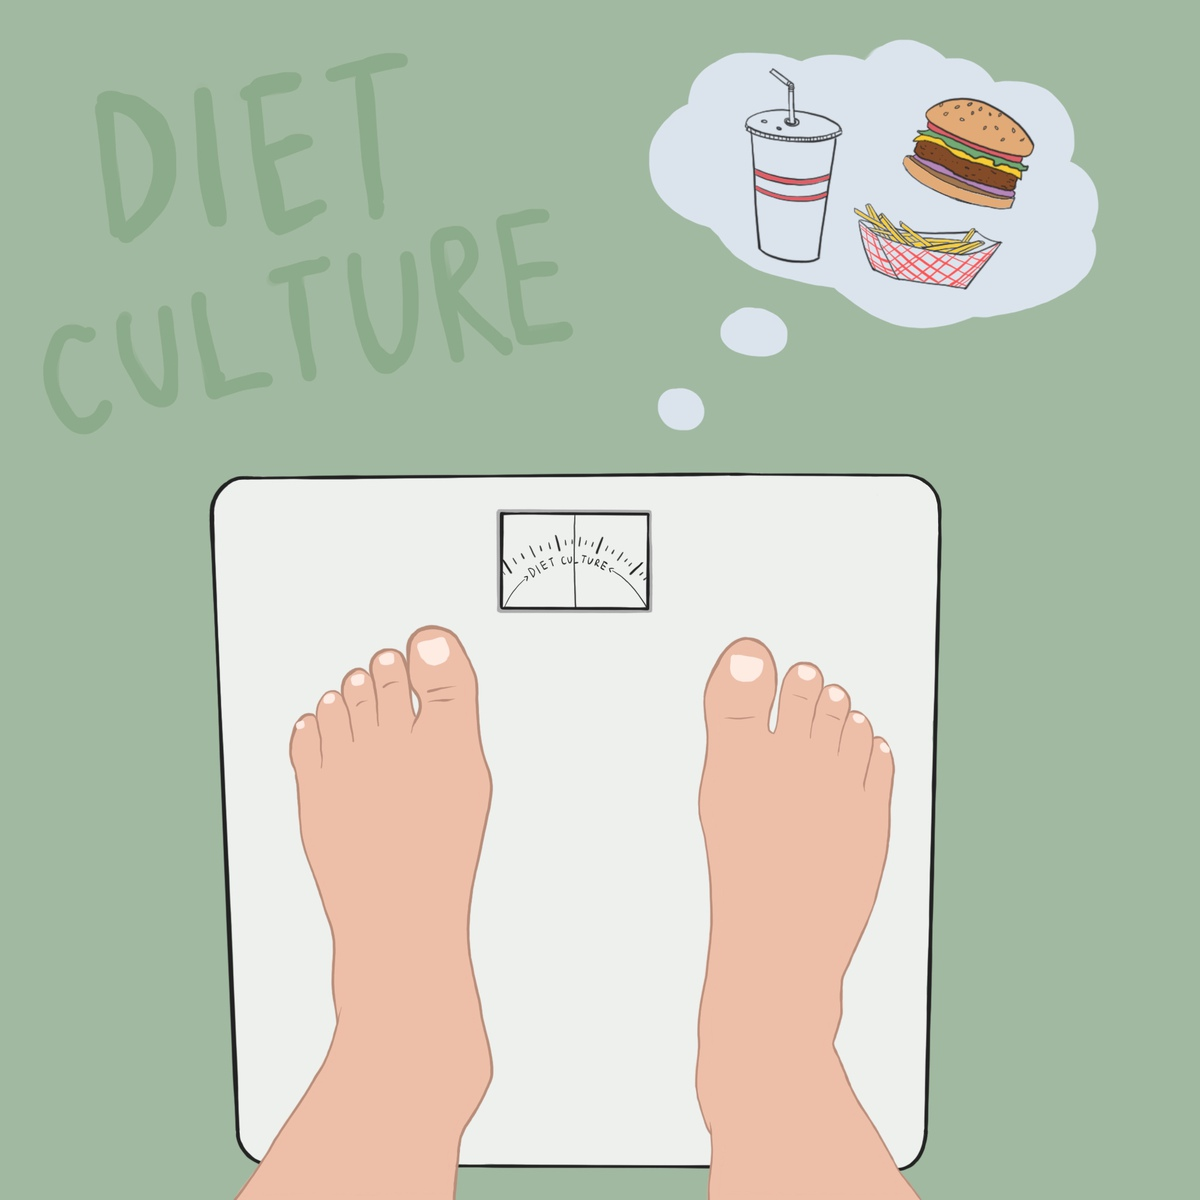 We must consider the consequences of diet culture | Daily Trojan